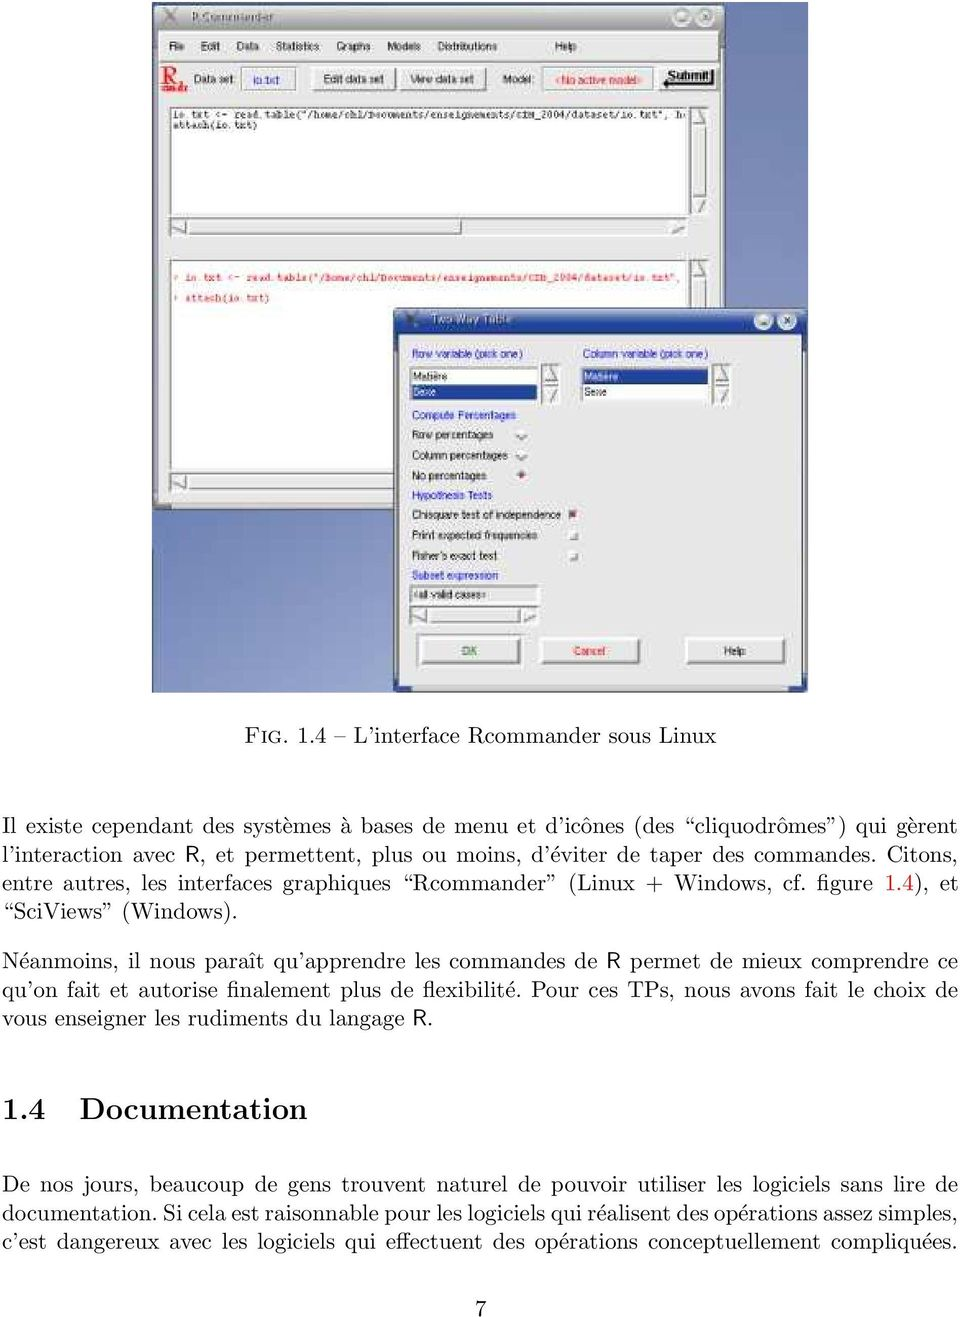 des commandes. Citons, entre autres, les interfaces graphiques Rcommander (Linux + Windows, cf. figure 1.4), et SciViews (Windows).